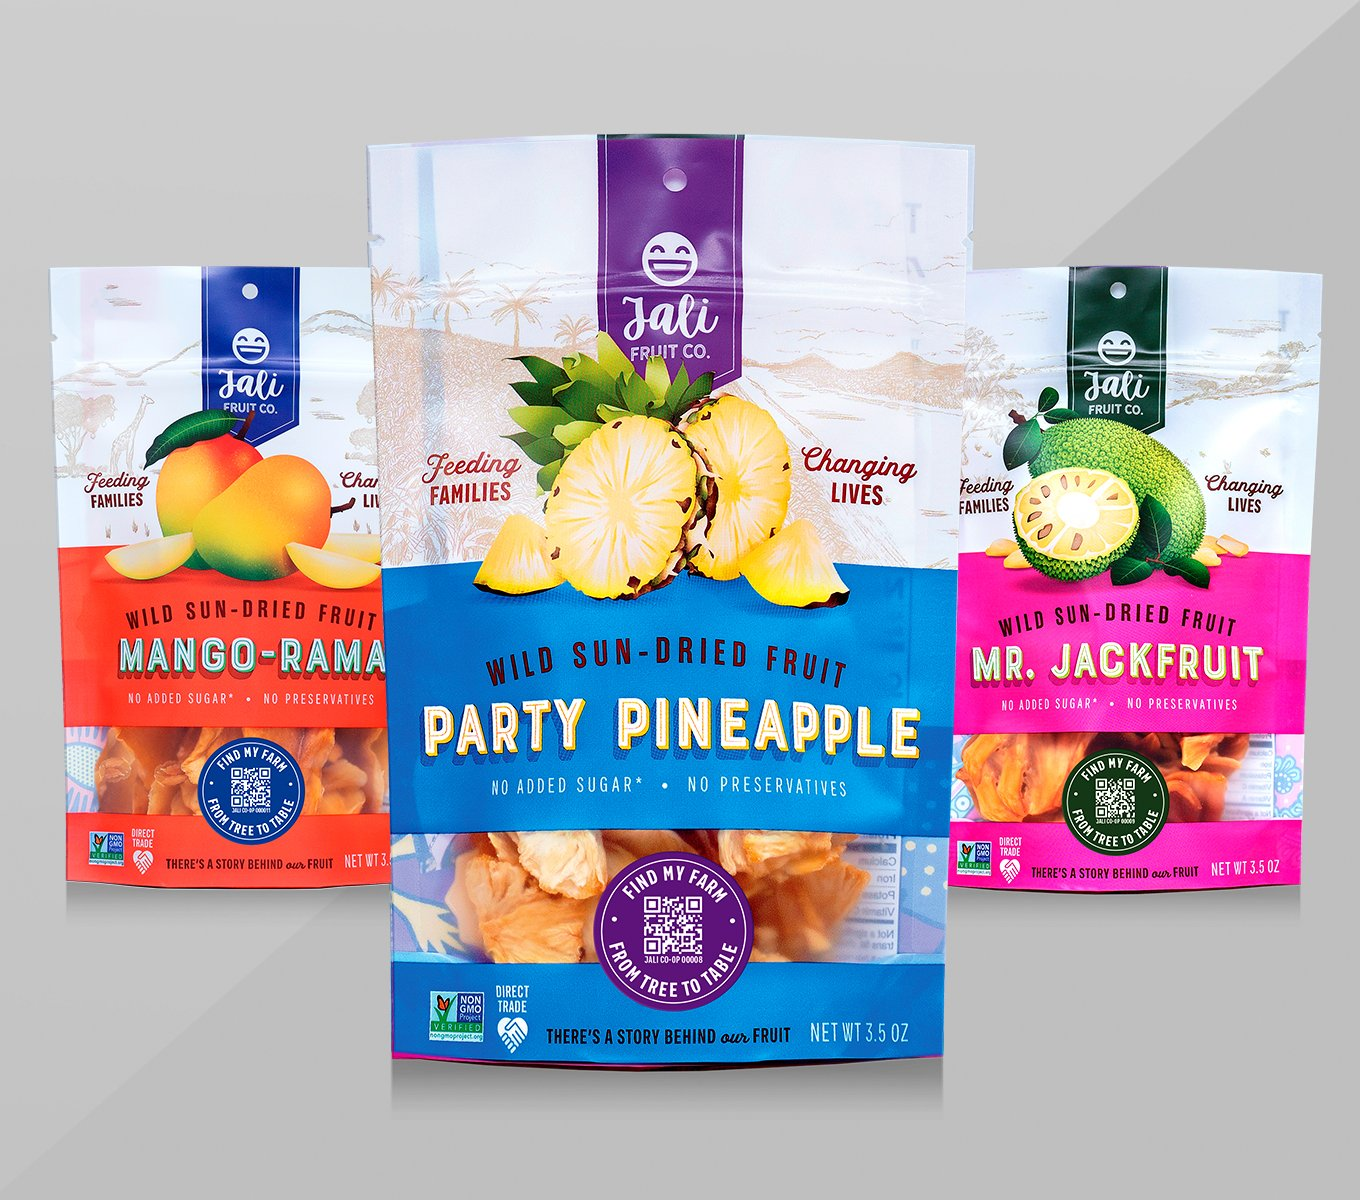 It's a Party! Pack The Jali Fruit Co.